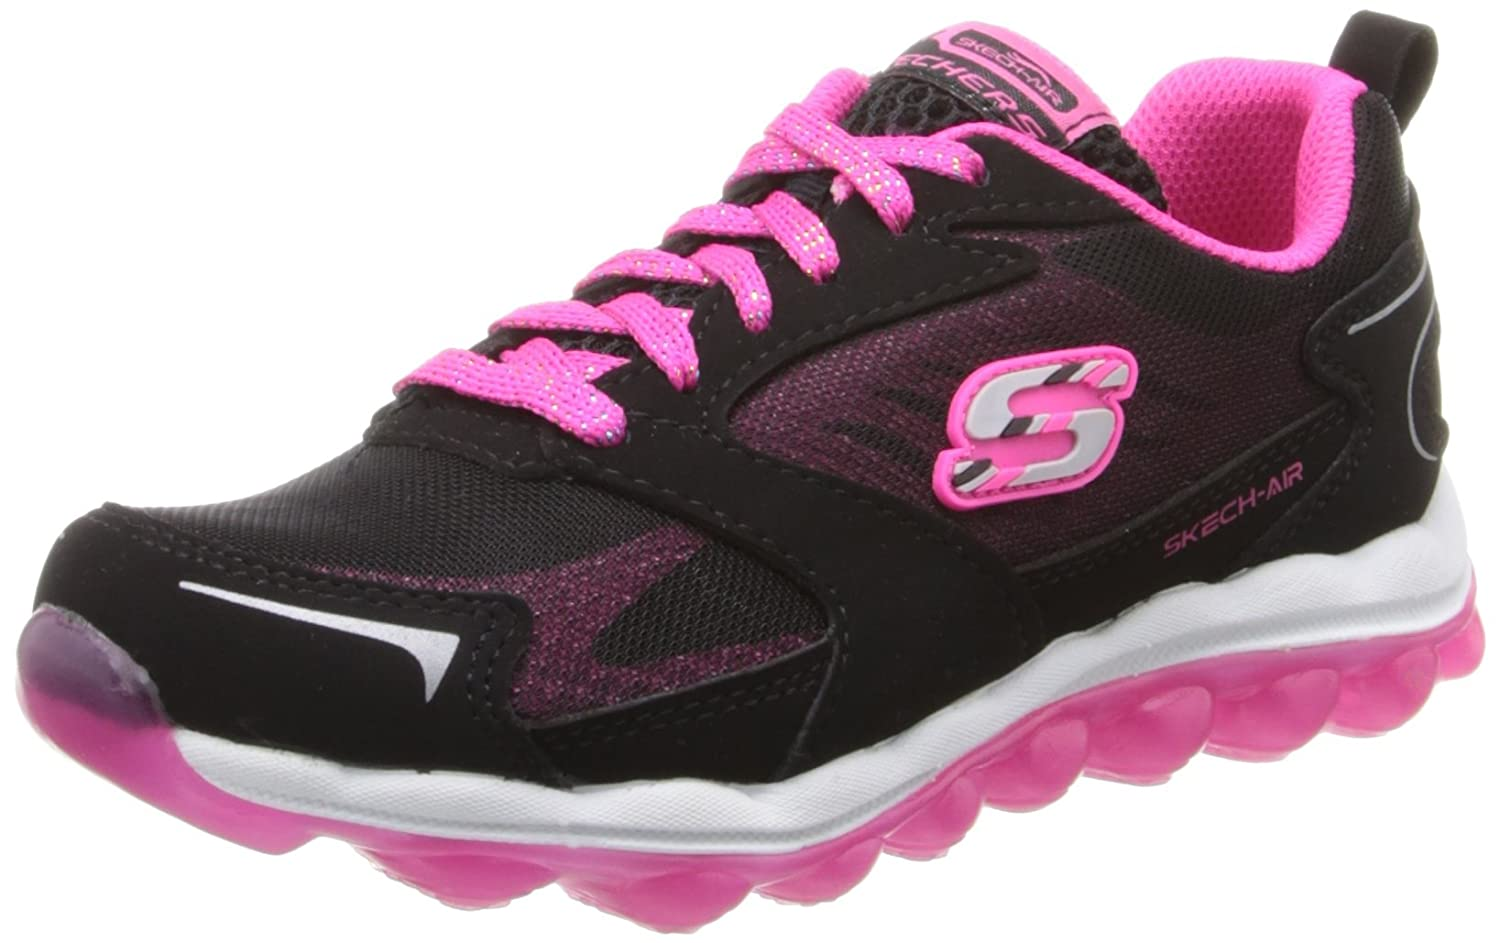 Skechers Kids Skech Air-Bizzy Sneaker